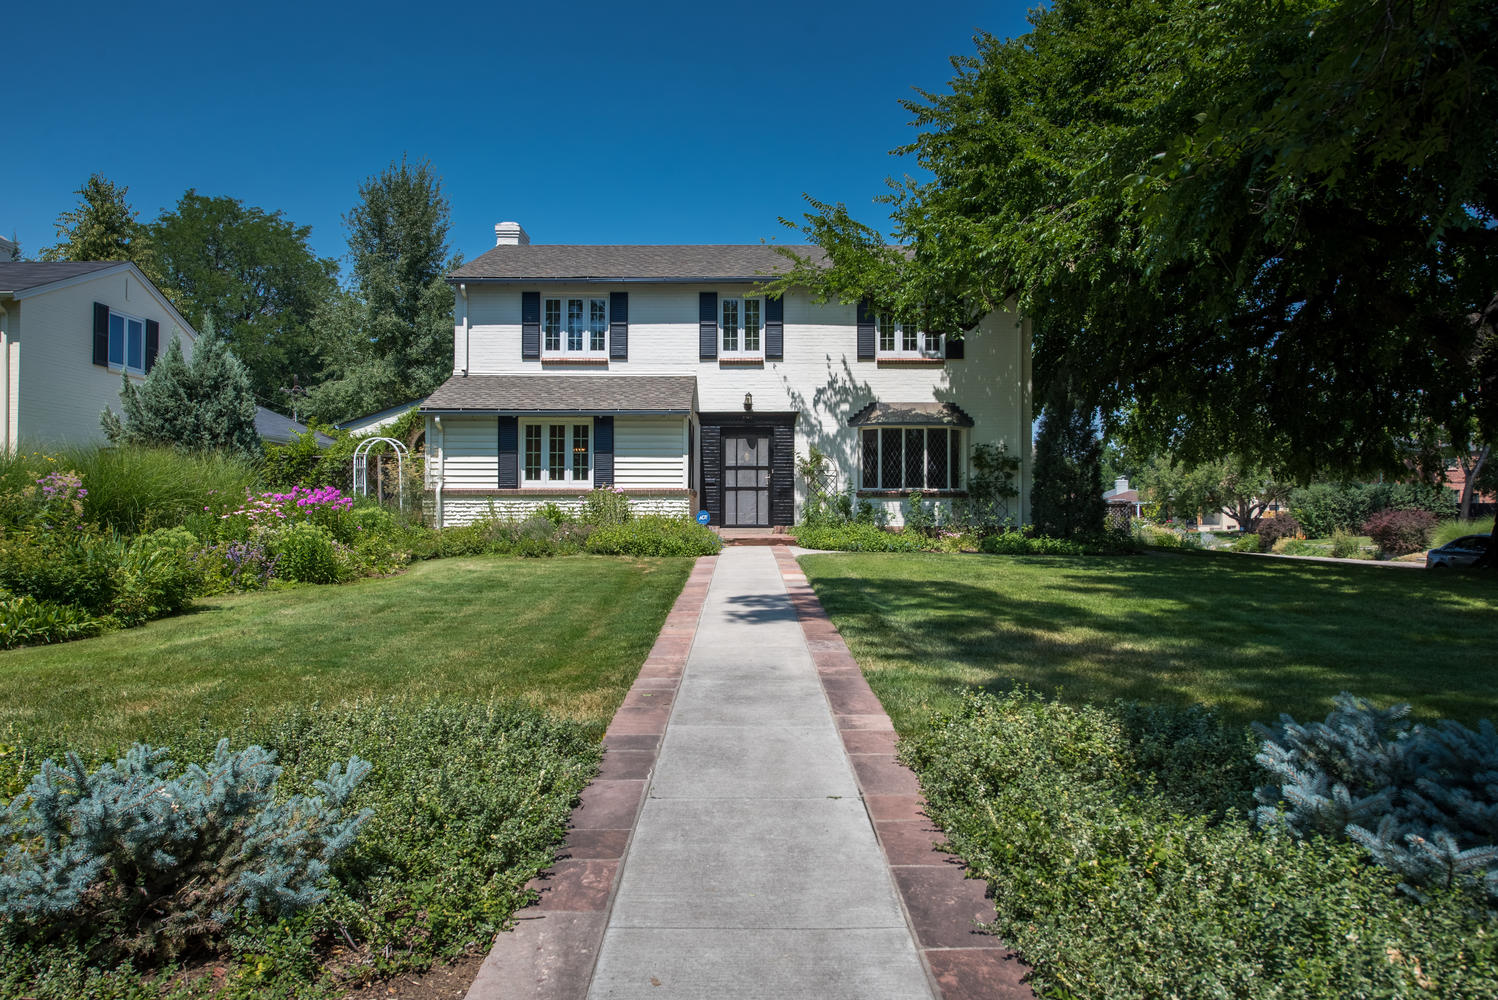 Additional photo for property listing at Classic New England Style Colonial 5745 East 6th Avenue Parkway Denver, Colorado 80220 United States